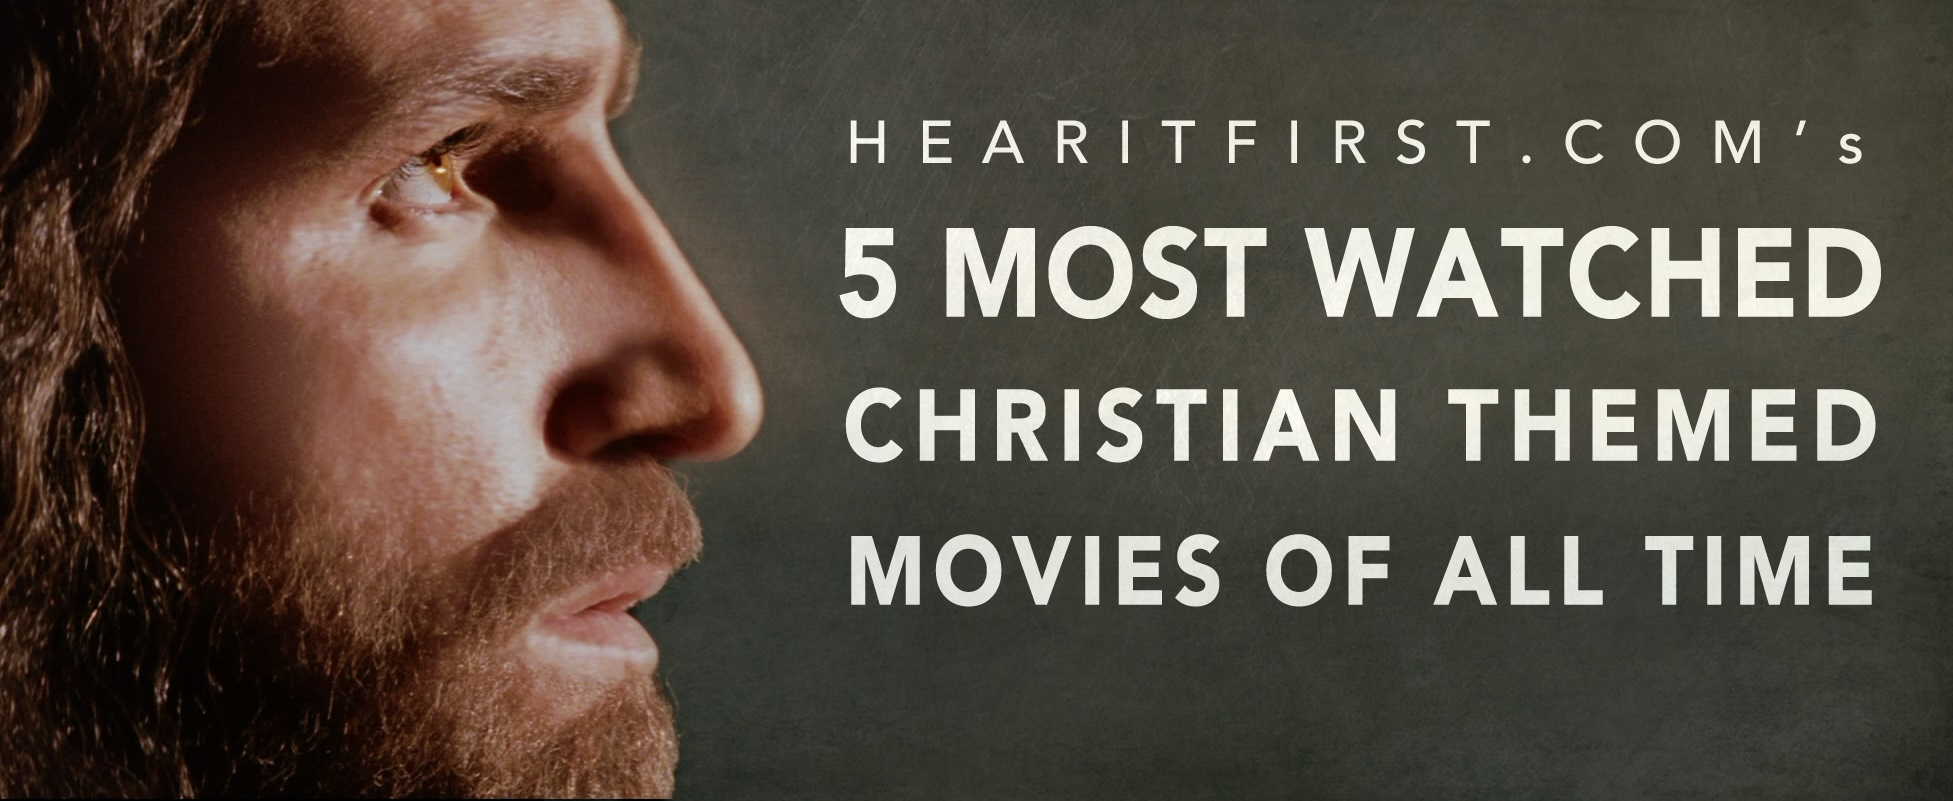 5 Most Watched Christian Themed Movies Of All Time